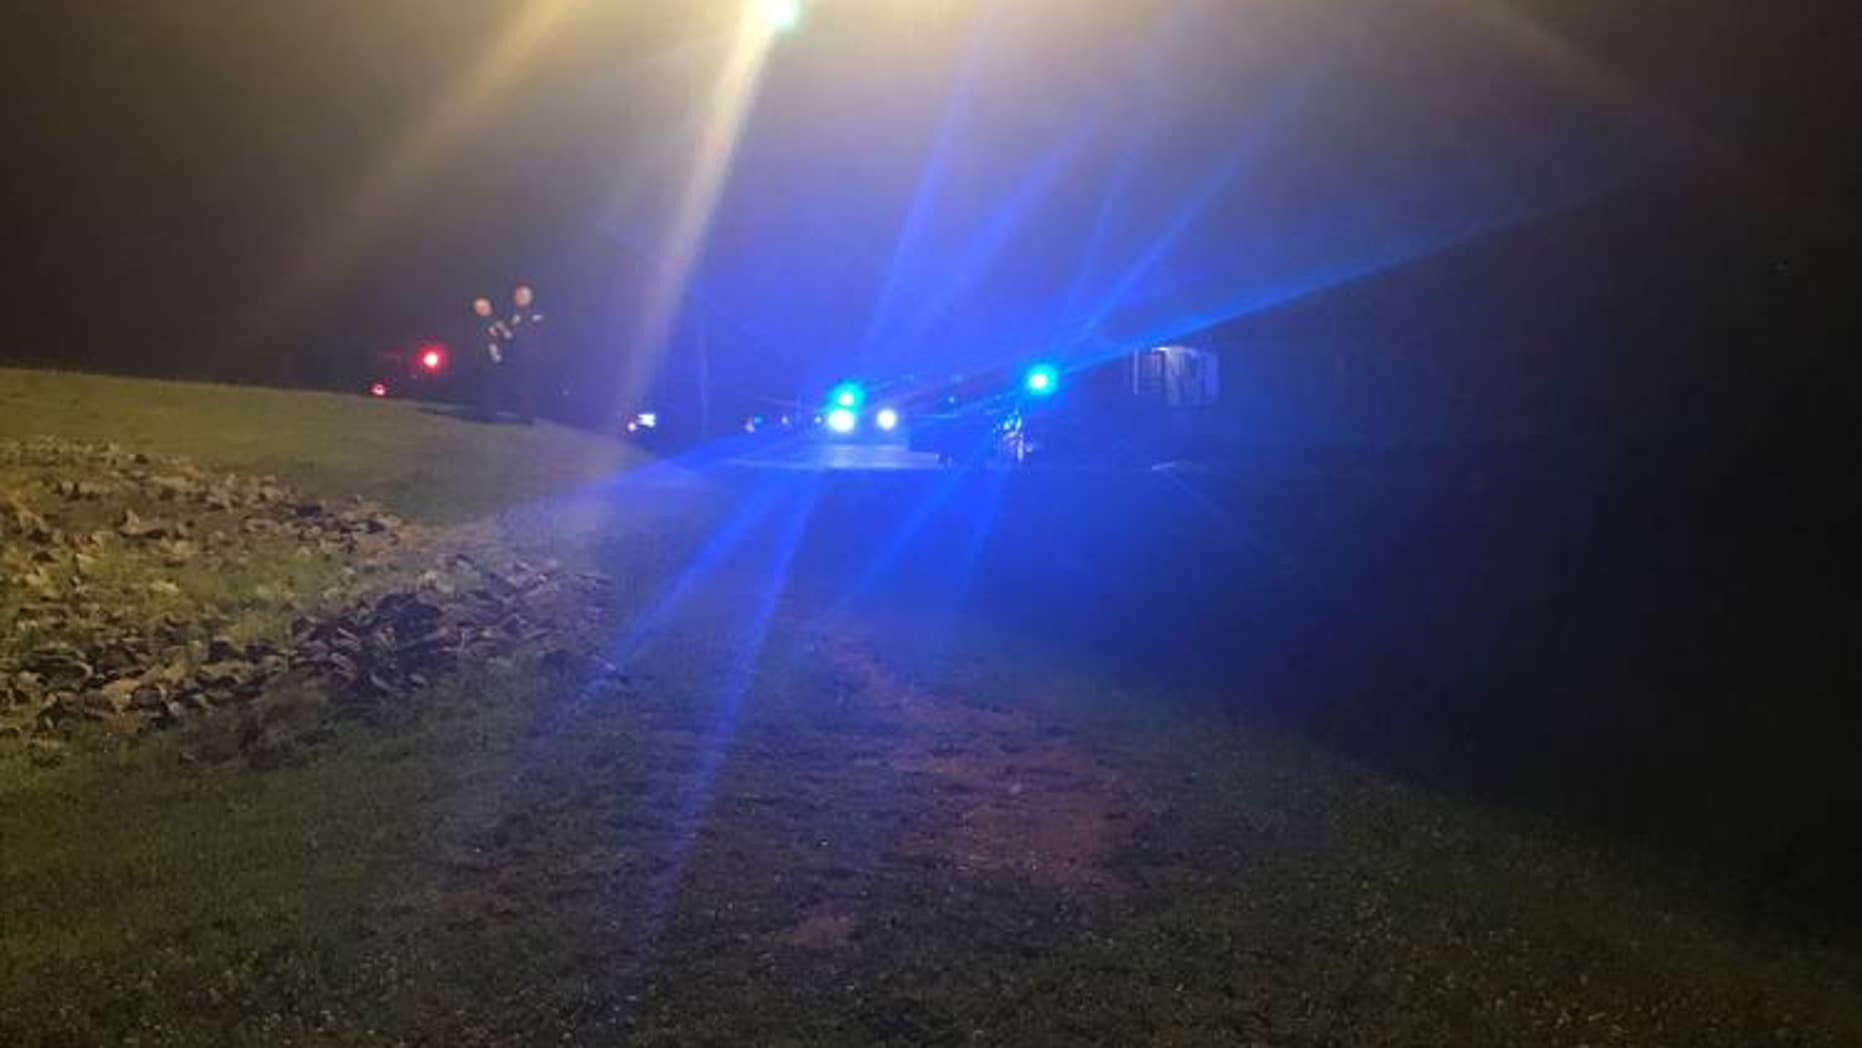 Westlake Legal Group ddd South Carolina dad fatally shoots daughter he thought was intruder: report fox-news/us/us-regions/southeast/south-carolina fox news fnc/us fnc article 99334c34-2023-54b6-9026-5f121deb6eee